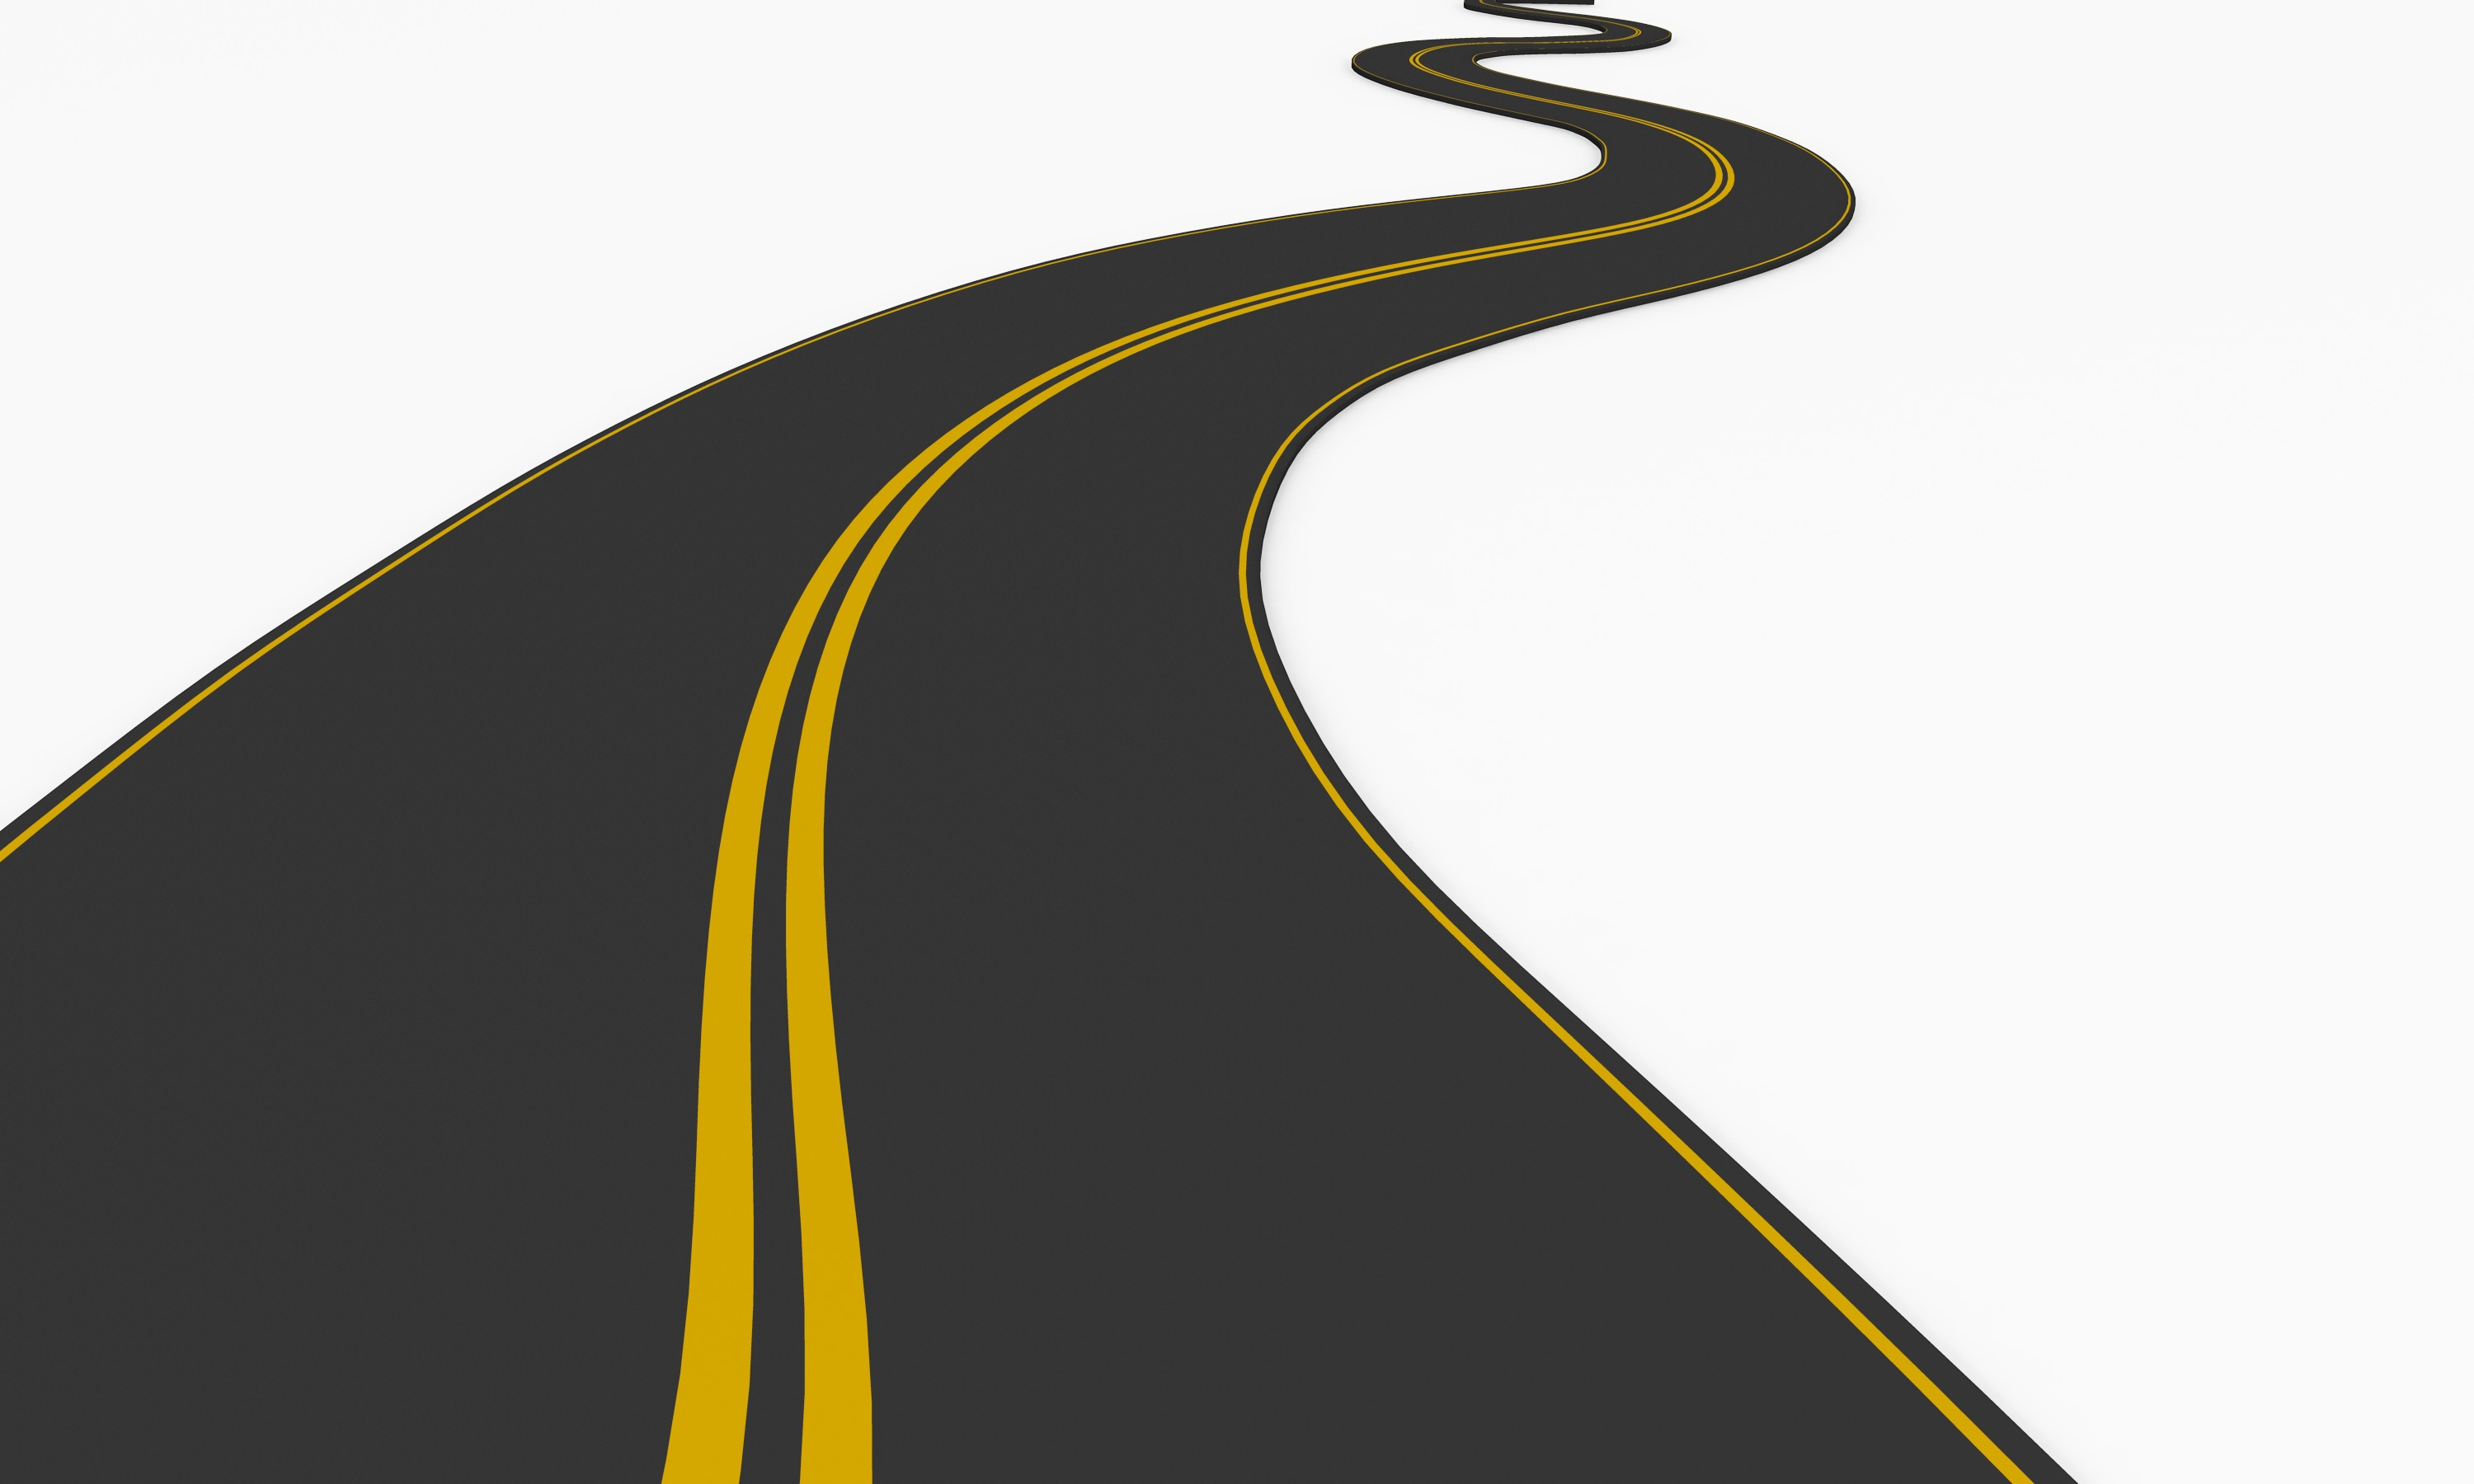 Curve clipart road map #2